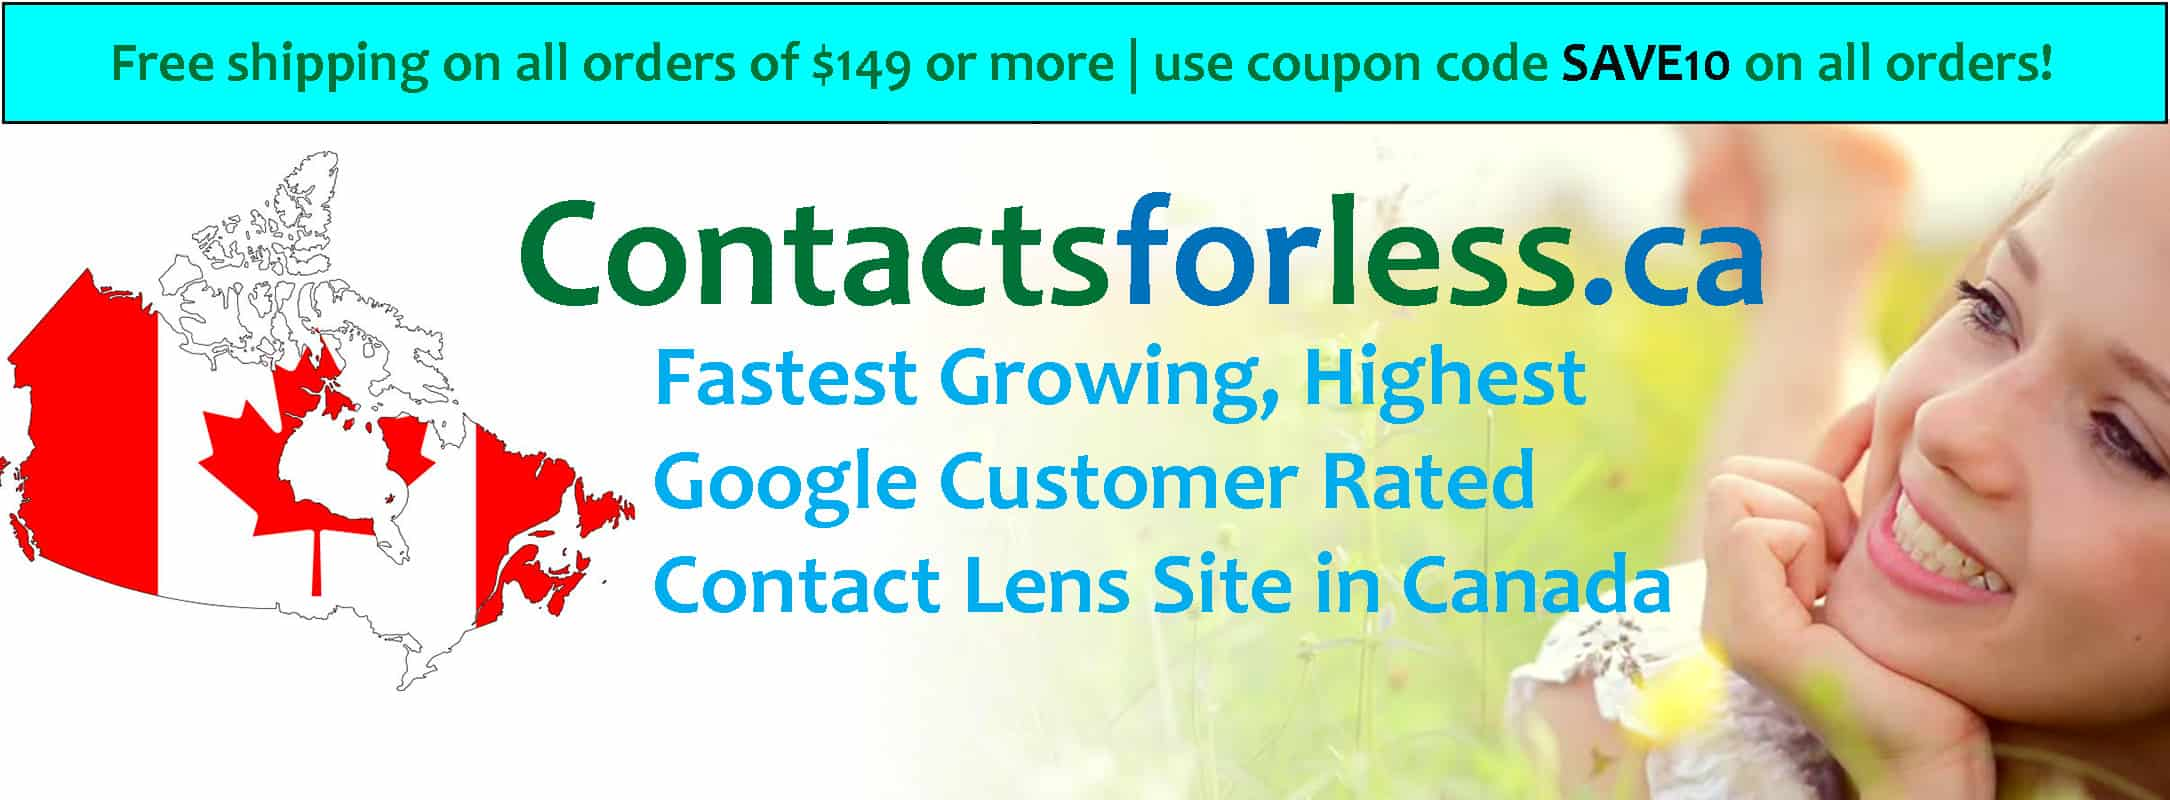 Best, cheapest contact lens site in Canada